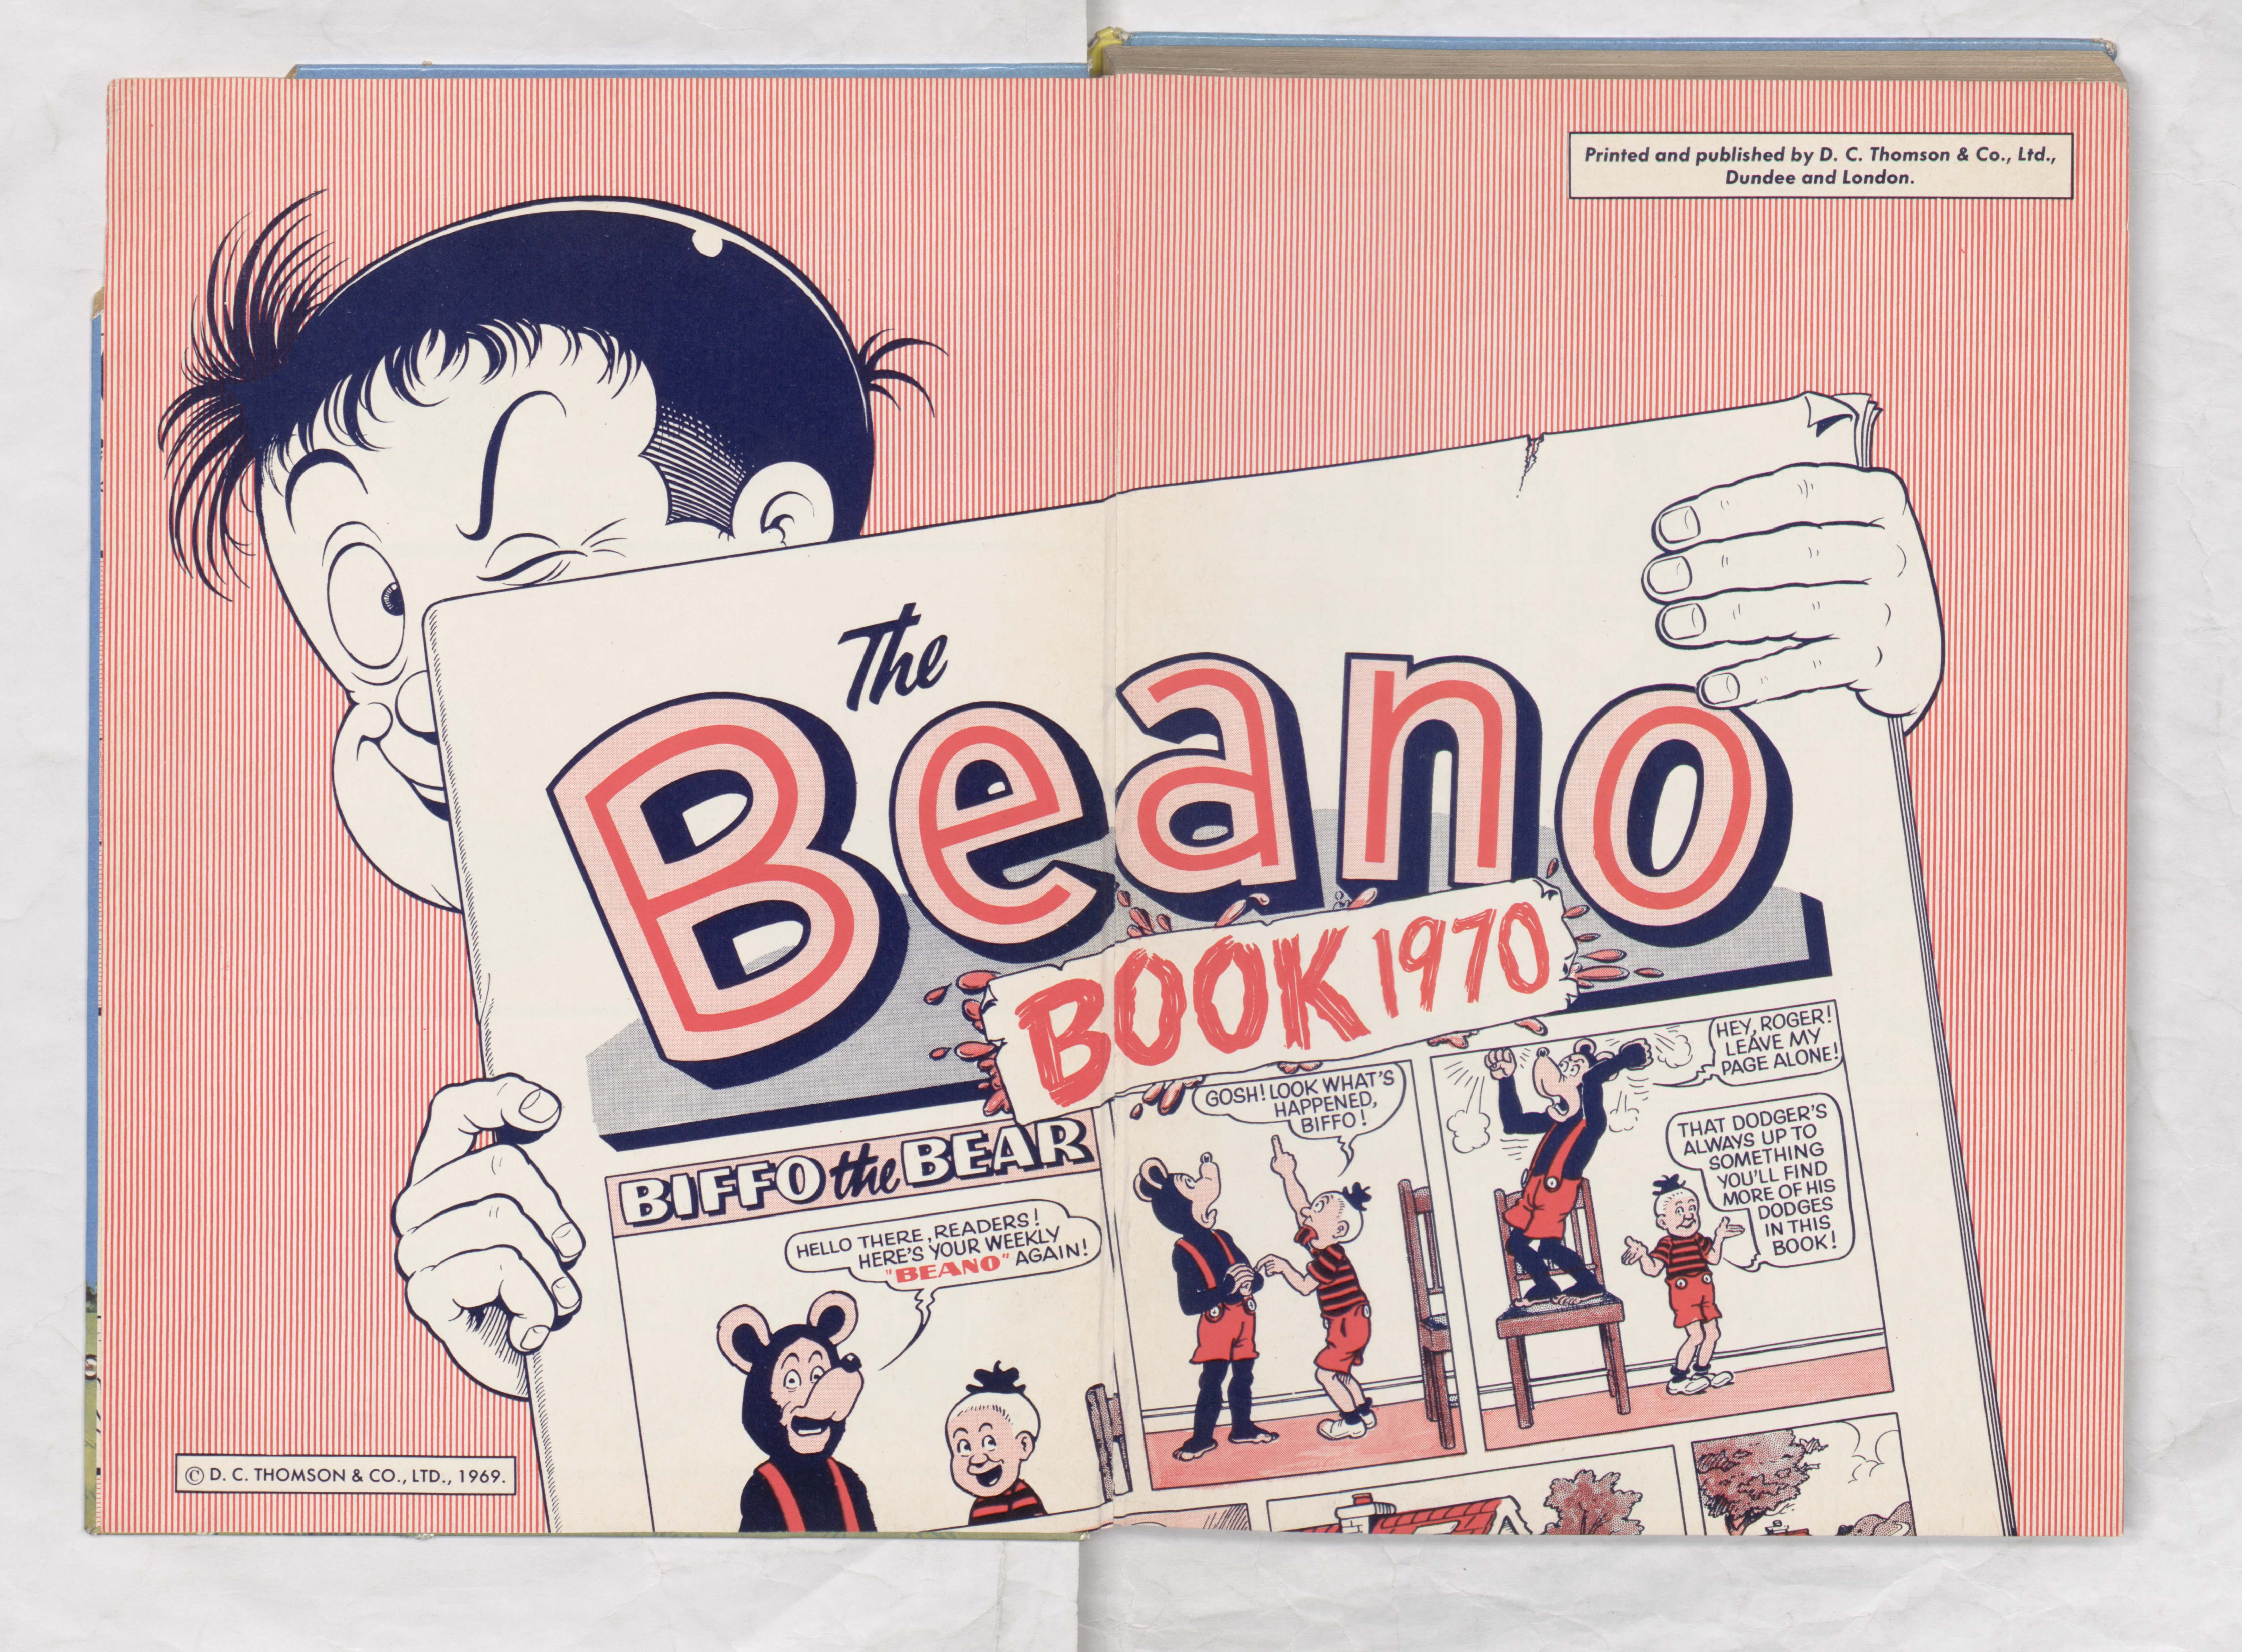 Beano Book 1970 - Welcome Page